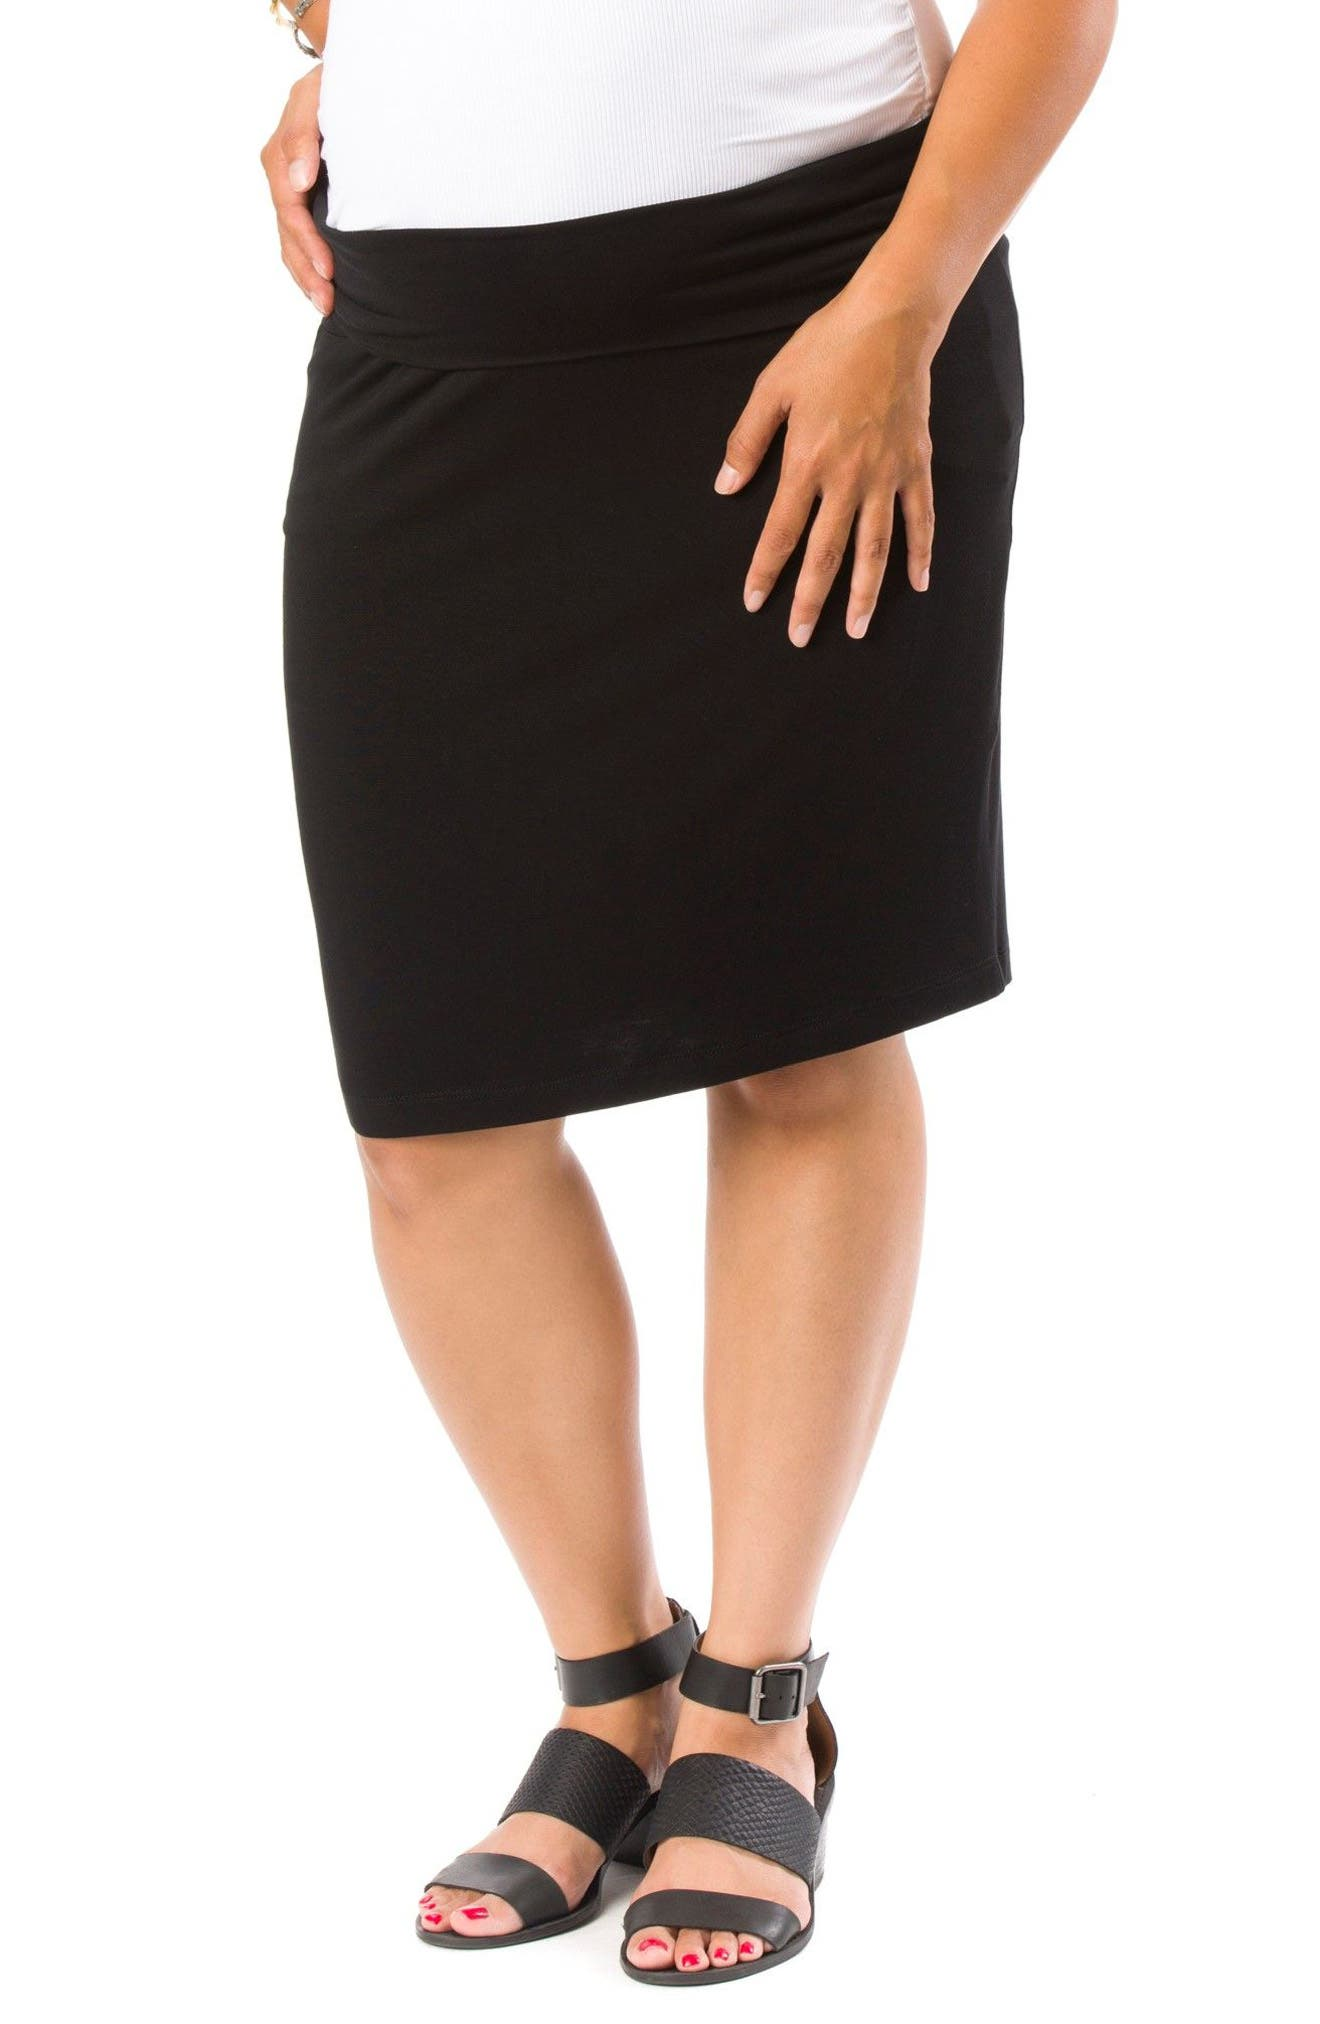 LAB40 Cleo Maternity Pencil Skirt